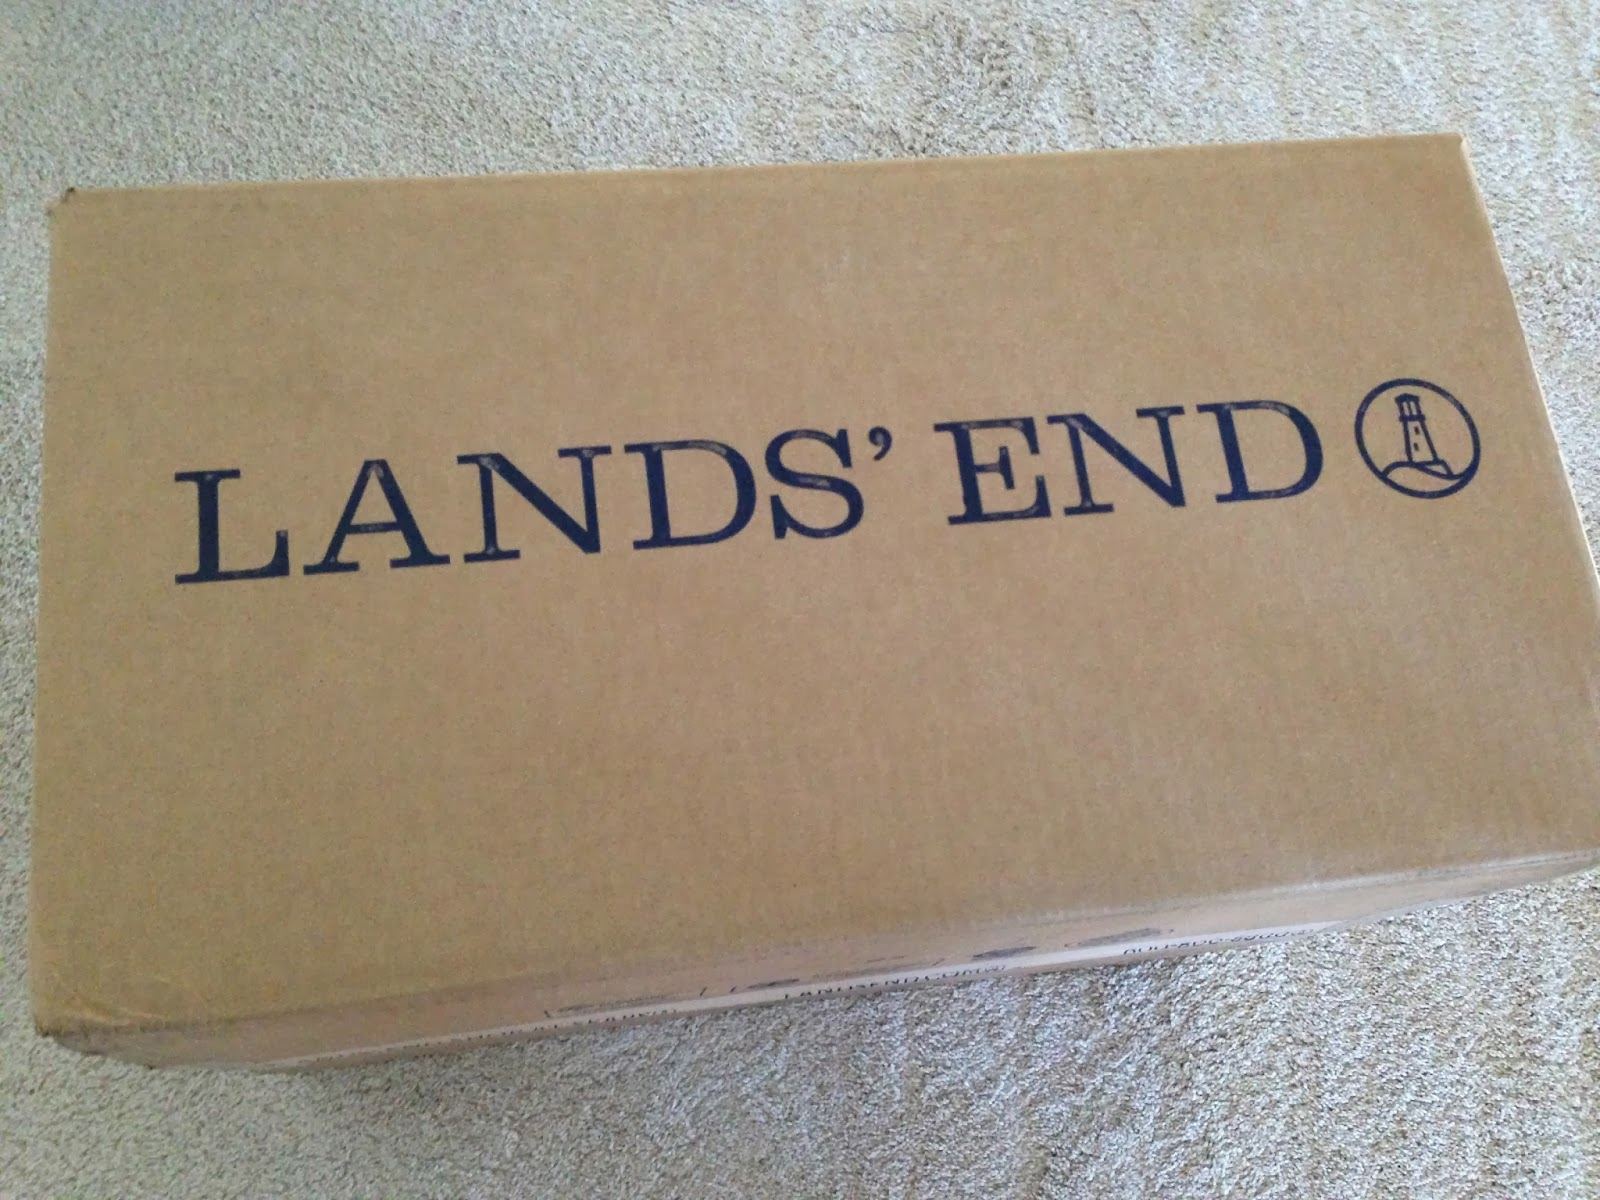 After 12 years in the Sears family fold, Lands' End is heading out on its own in a spinoff set for April 4. From there on out, it'll be a stand-alone, publicly-traded company, without the.